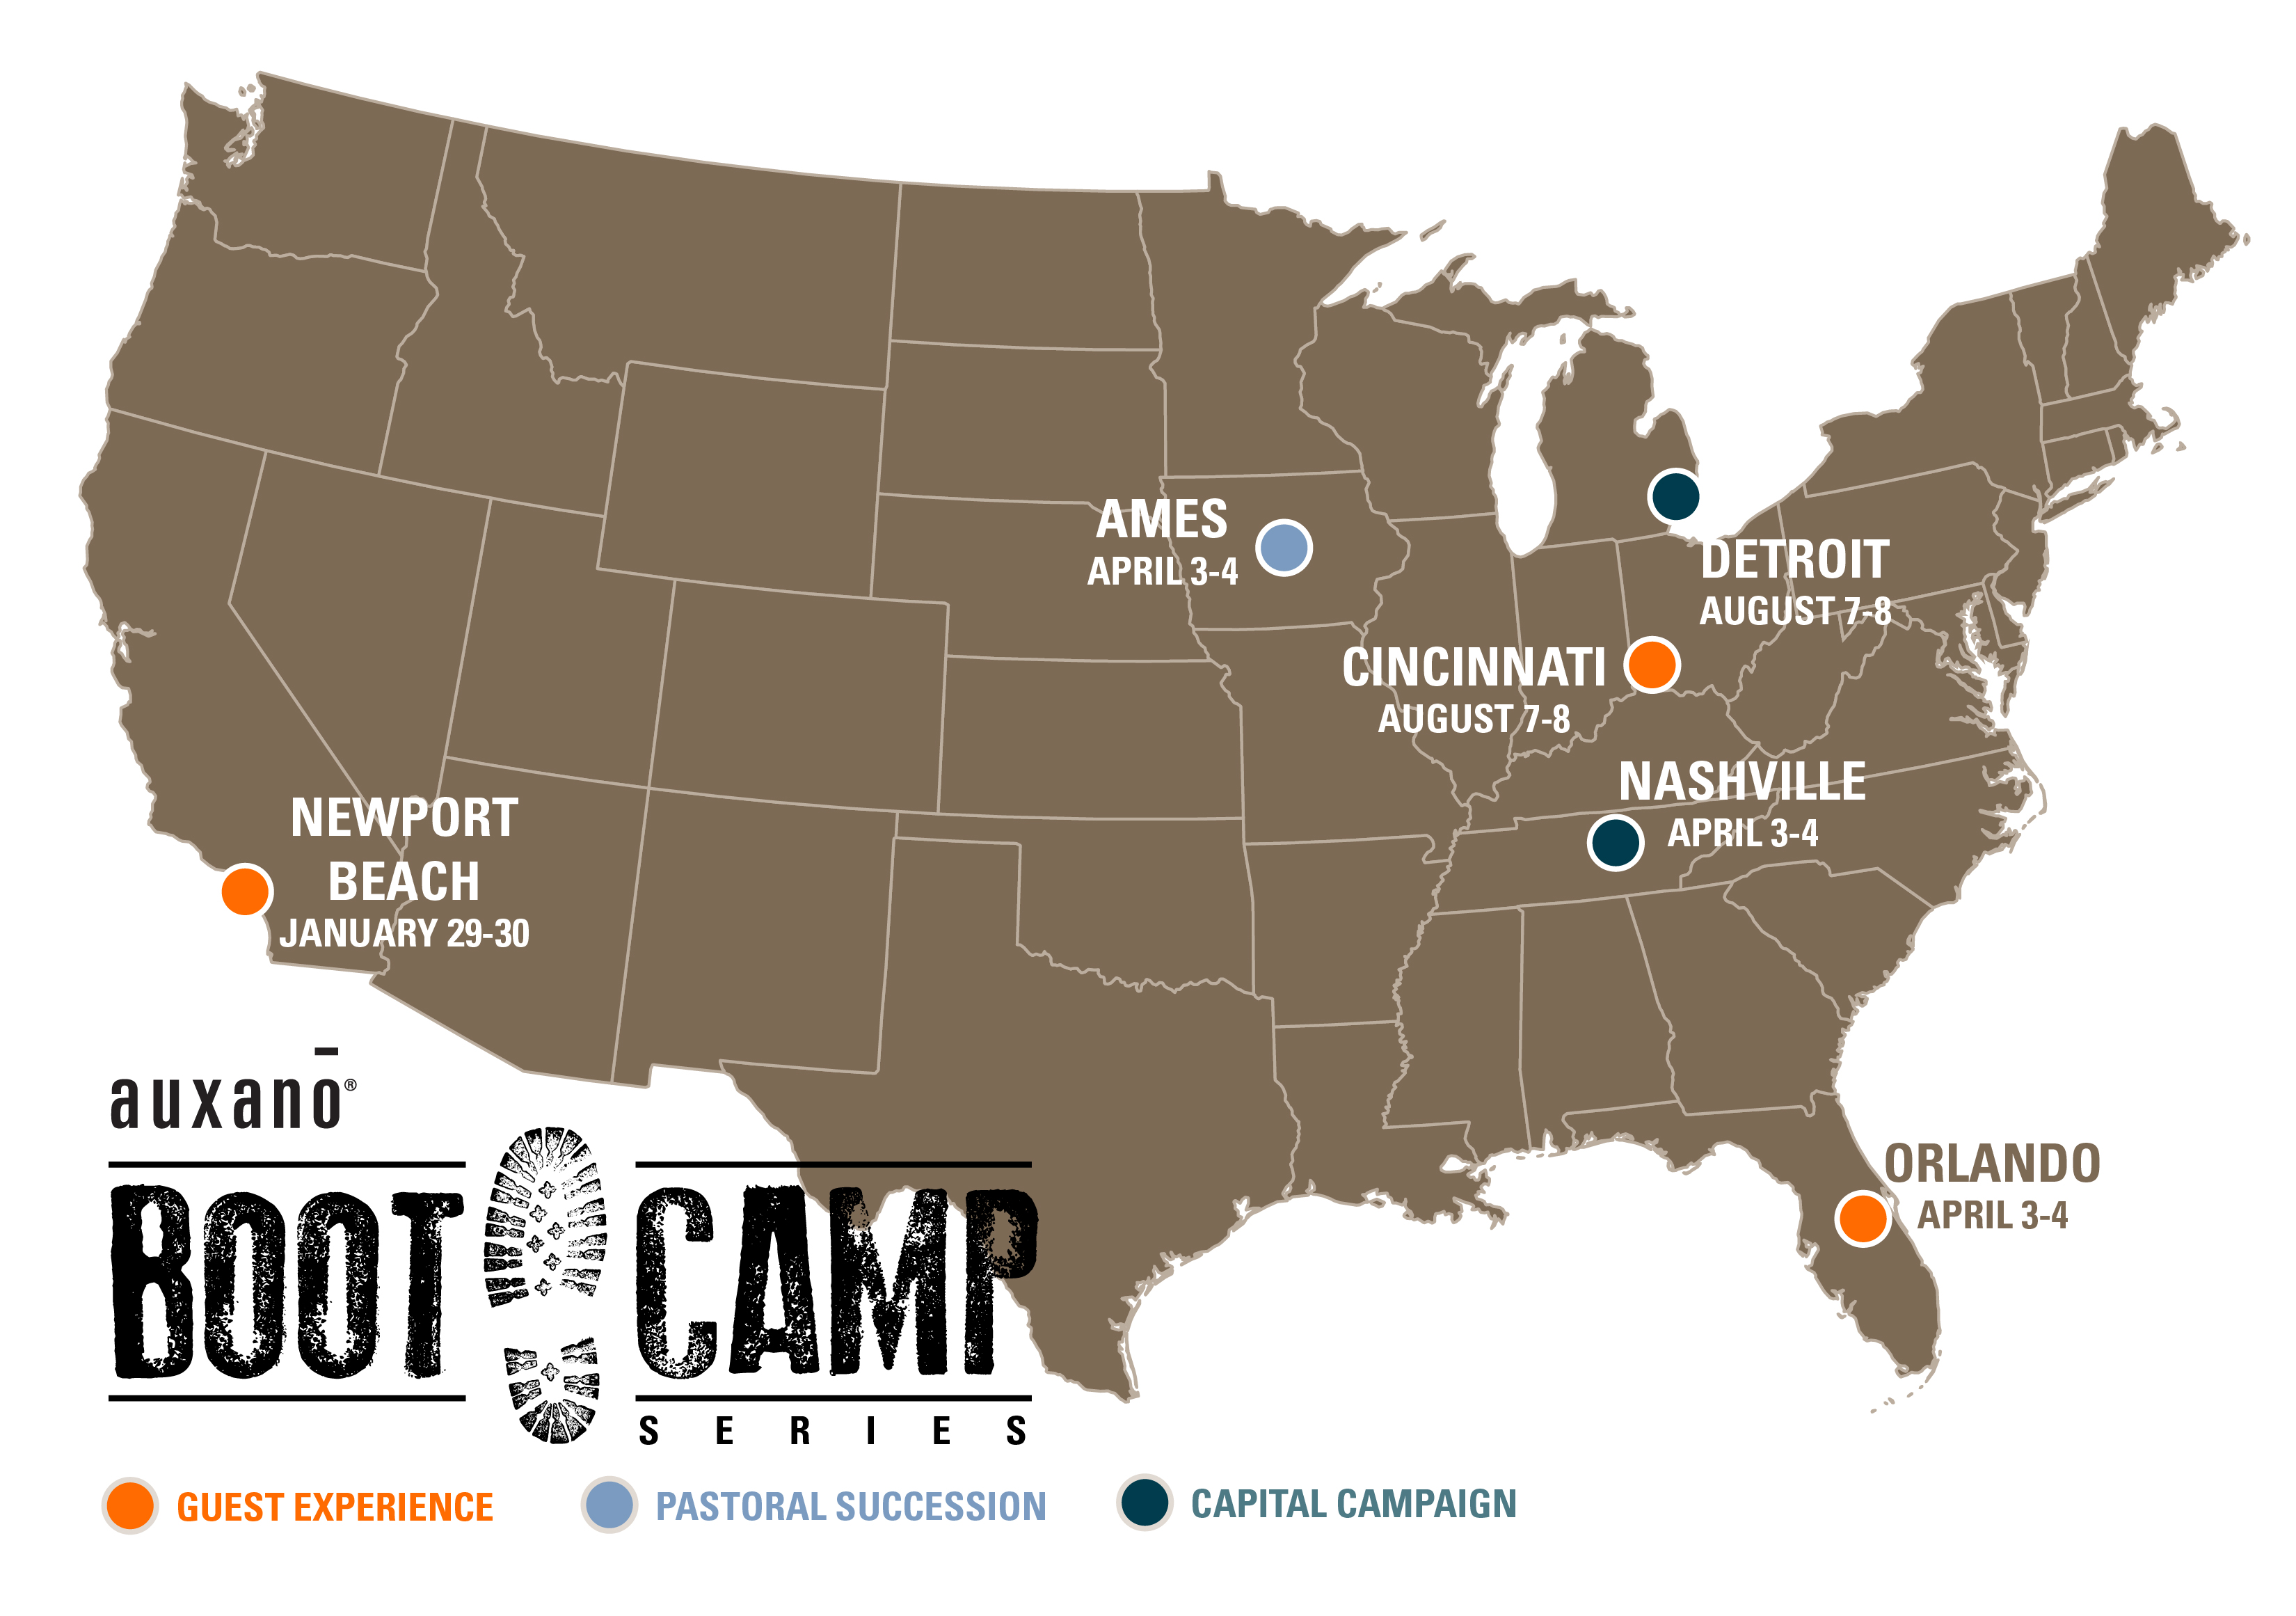 boot camp location map-020619 v2